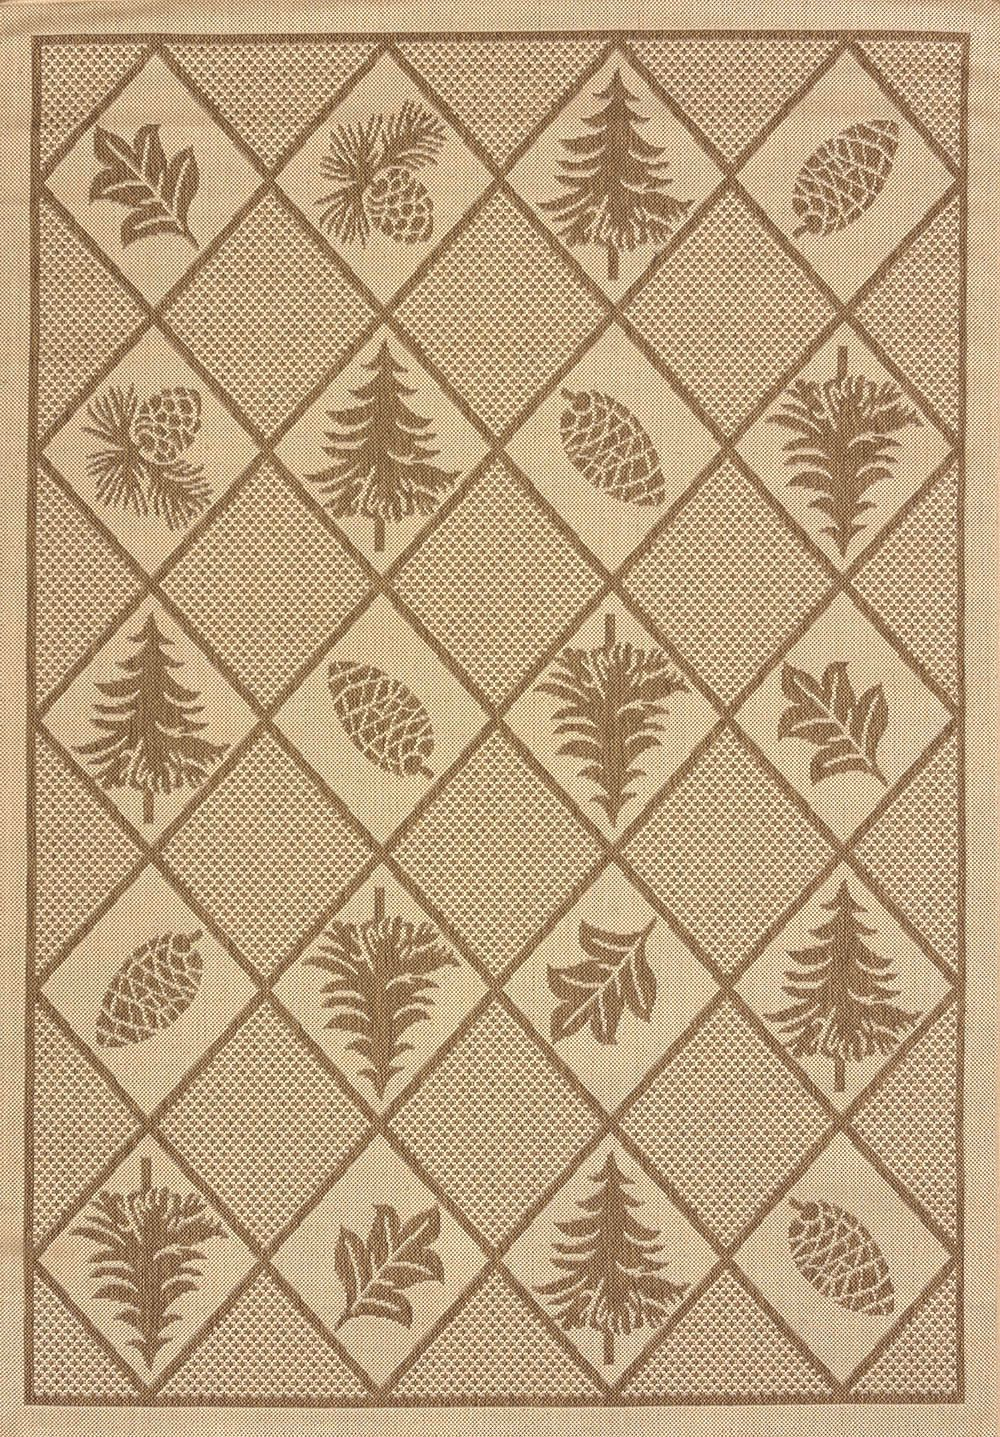 united weavers solarium  woven country & floral area rug collection